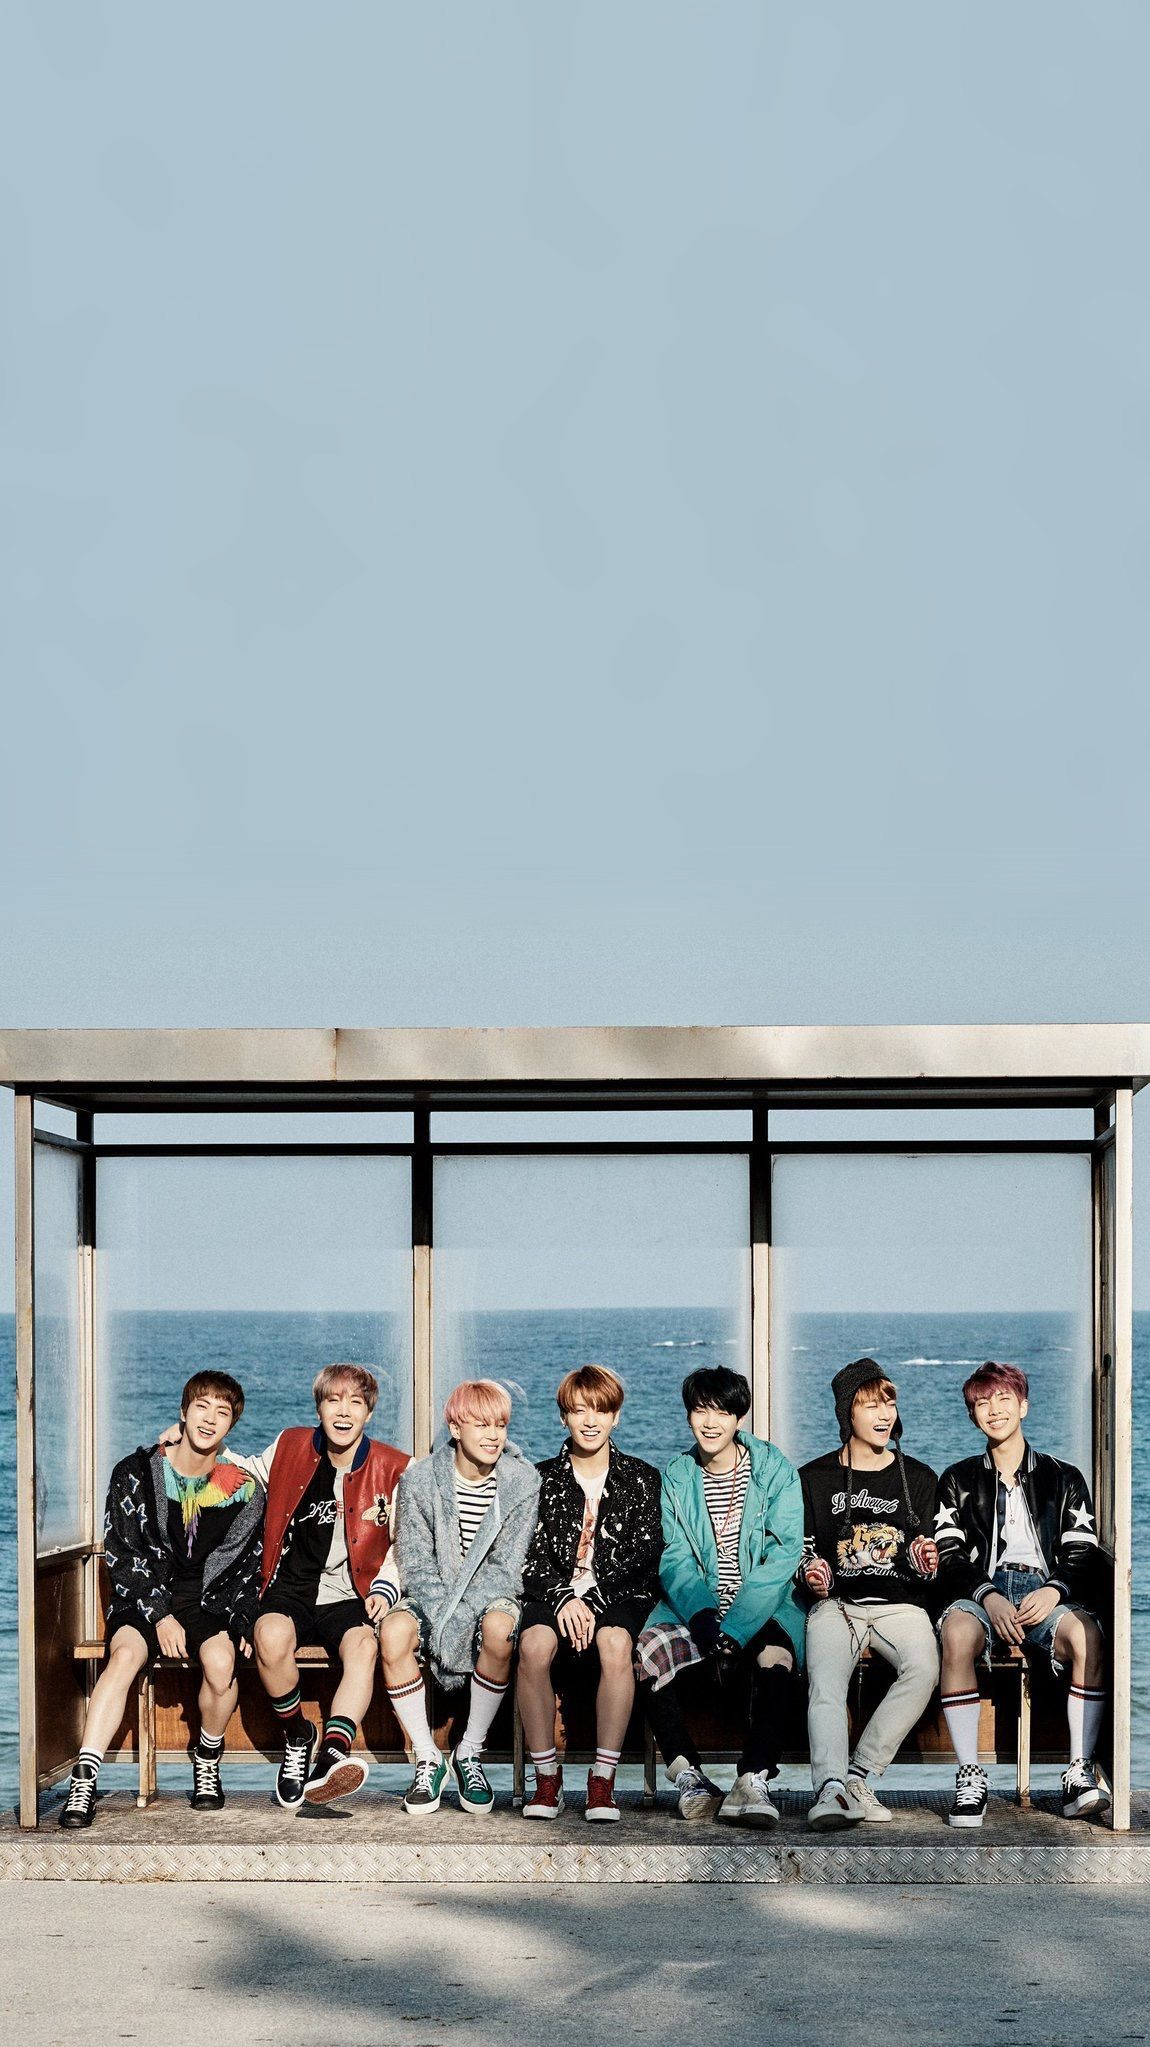 Bts Spring Day Best Picture For Bts Tattoo You Never Walk Alone For Your Taste You Are Looking For Bts Spring Day Wallpaper Bts Spring Day Bts Wallpaper Bts spring day wallpaper hd desktop